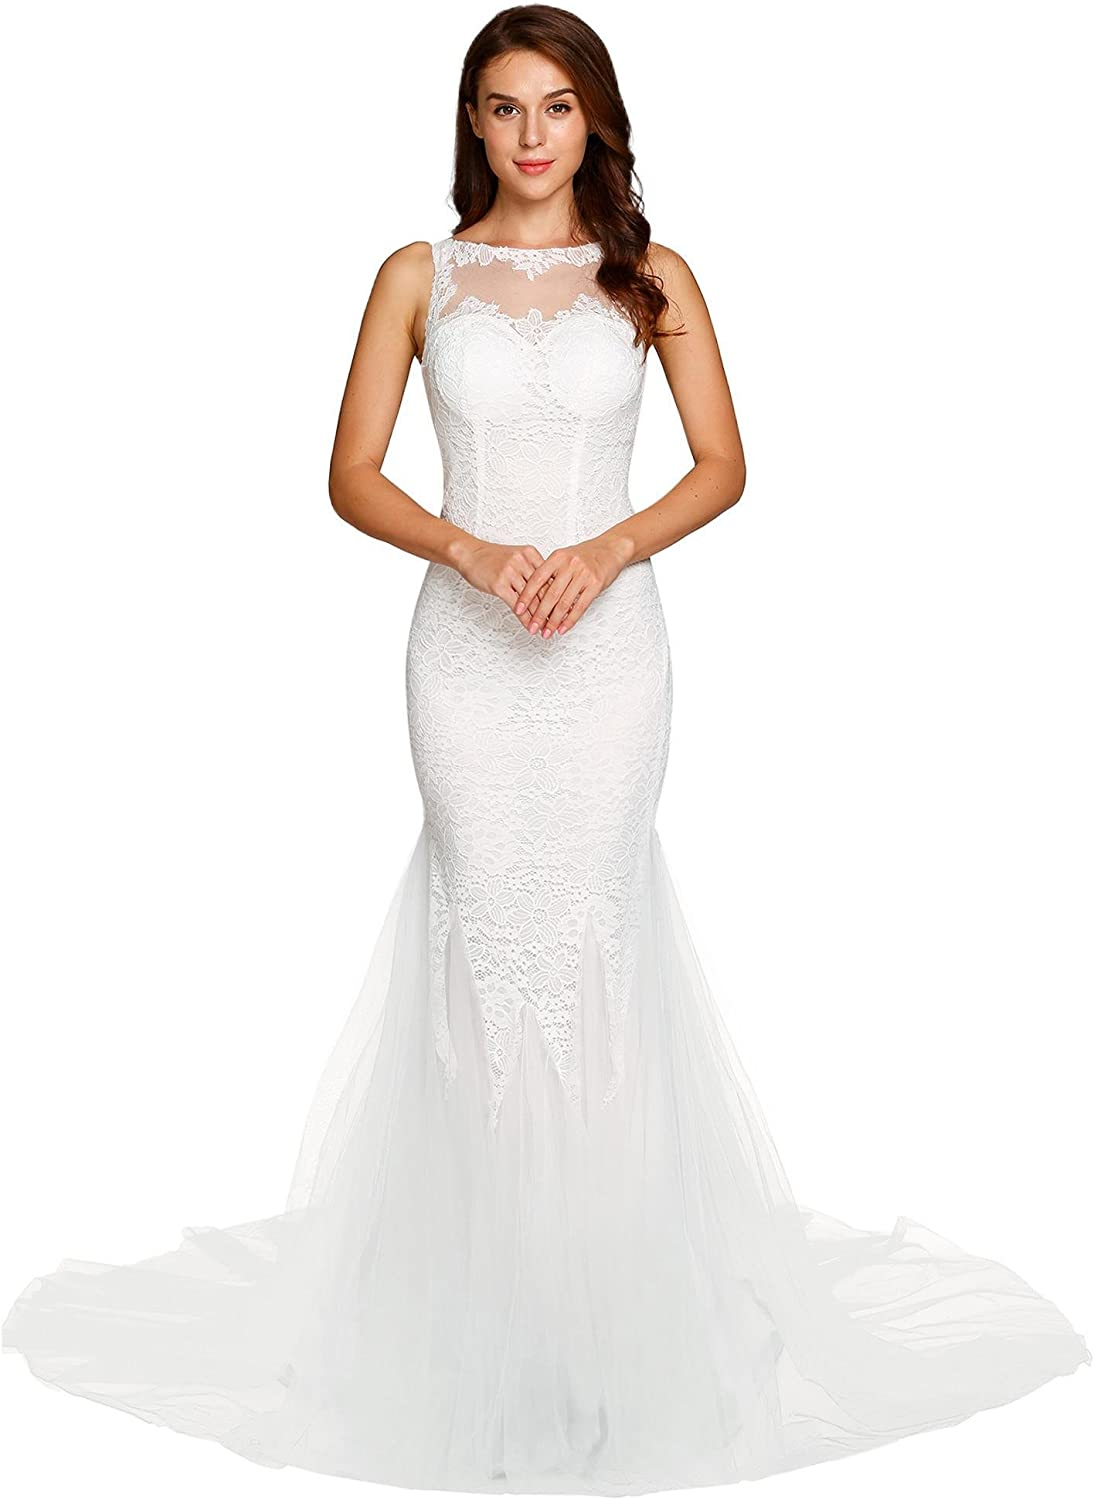 ANGVNS Women's O Neck Sleeveless Backless Tulle Chapel Train Floral Lace Mermaid Wedding Dress Bridal Gown